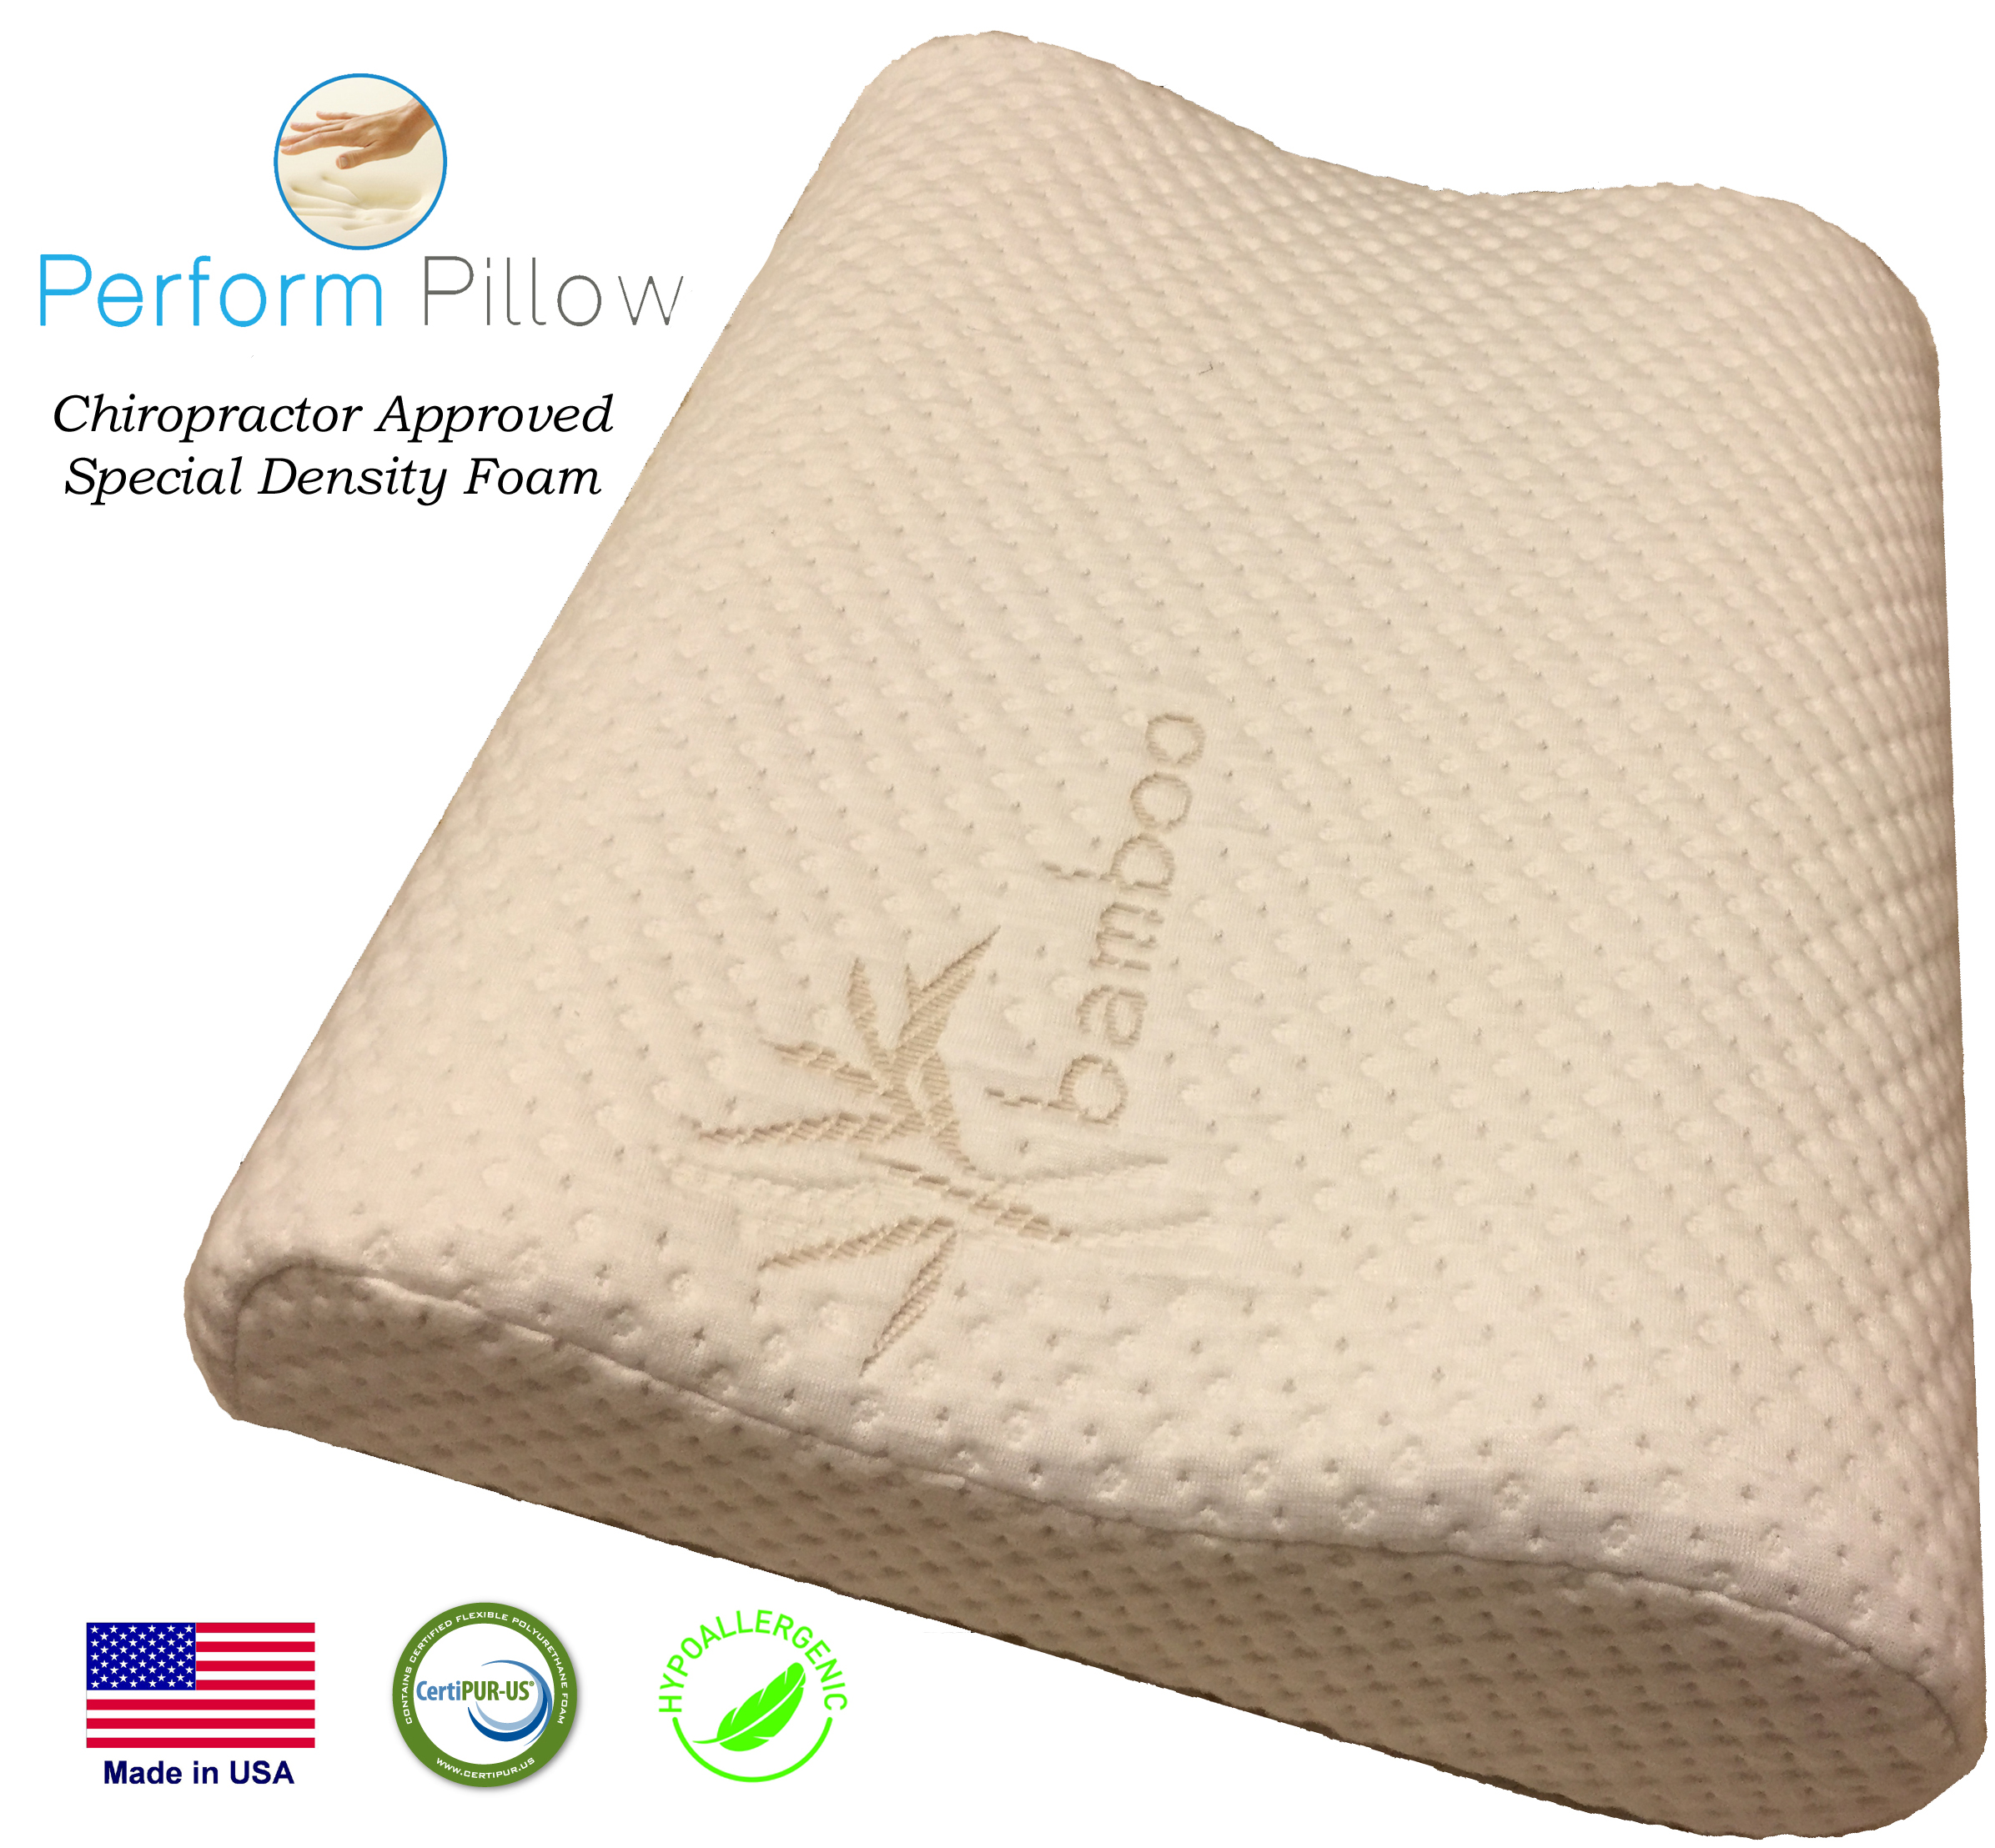 cervical pinterest neck chiropractic blanket canada pillow pillows cushion roll support gallery traction